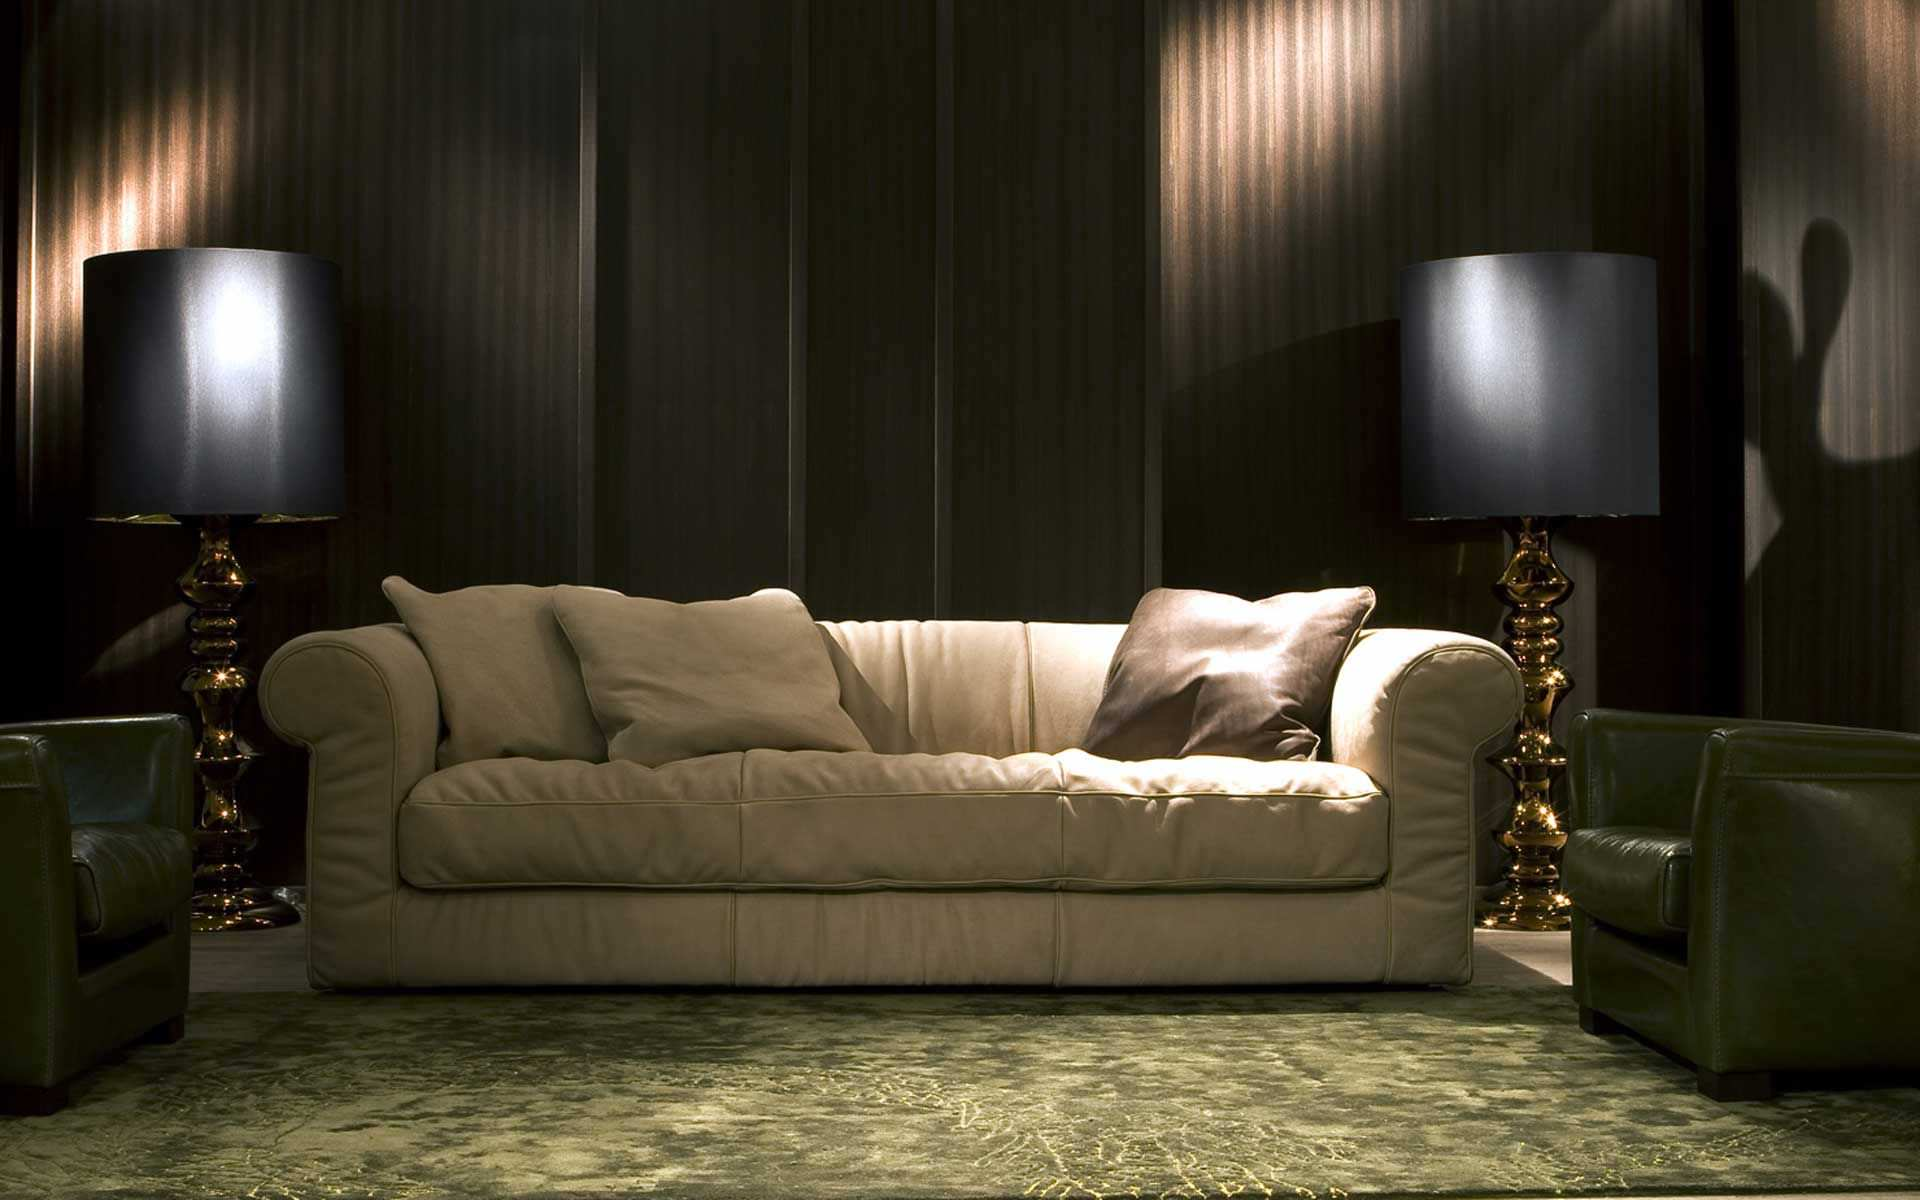 traditional-leather-sofas-4650-5458015